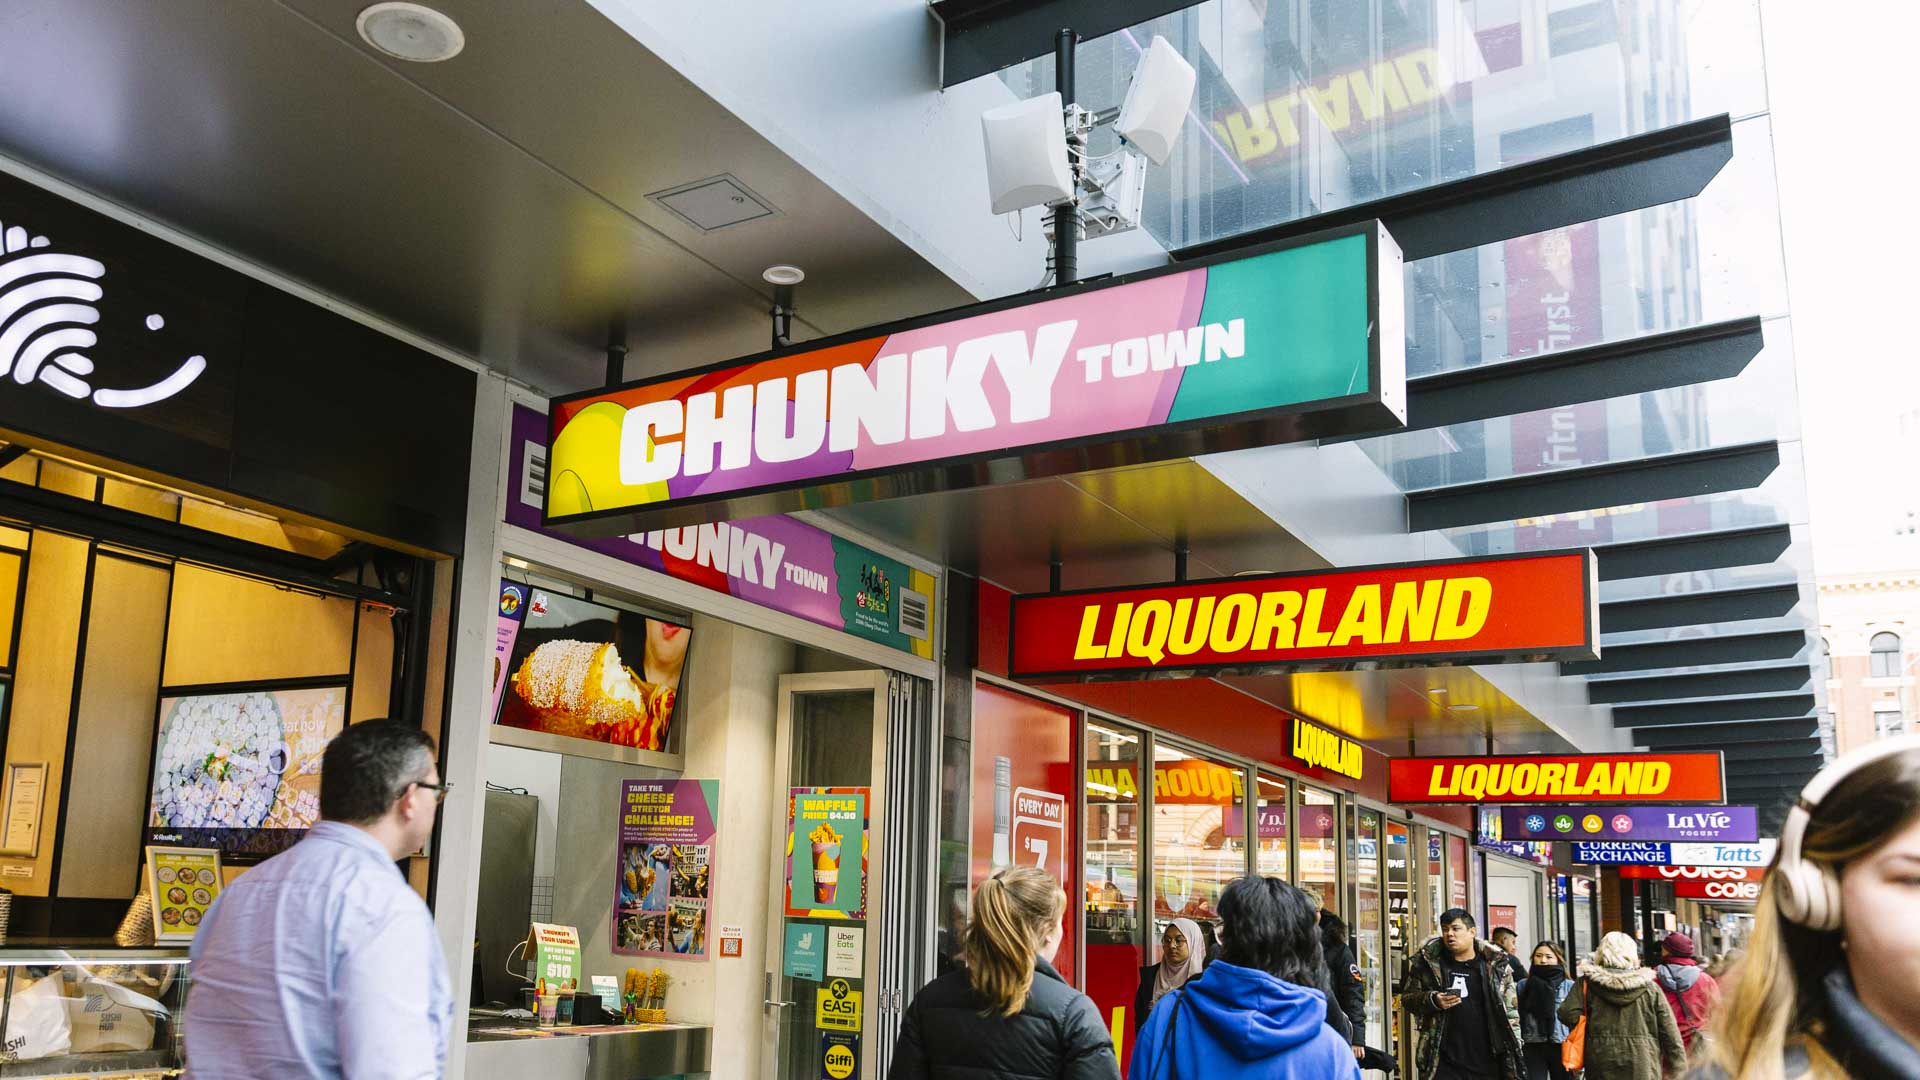 Chunky Town Is Melbourne's New Hole-in-the-Wall Serving Up a Cheesy Korean Street Food Snack